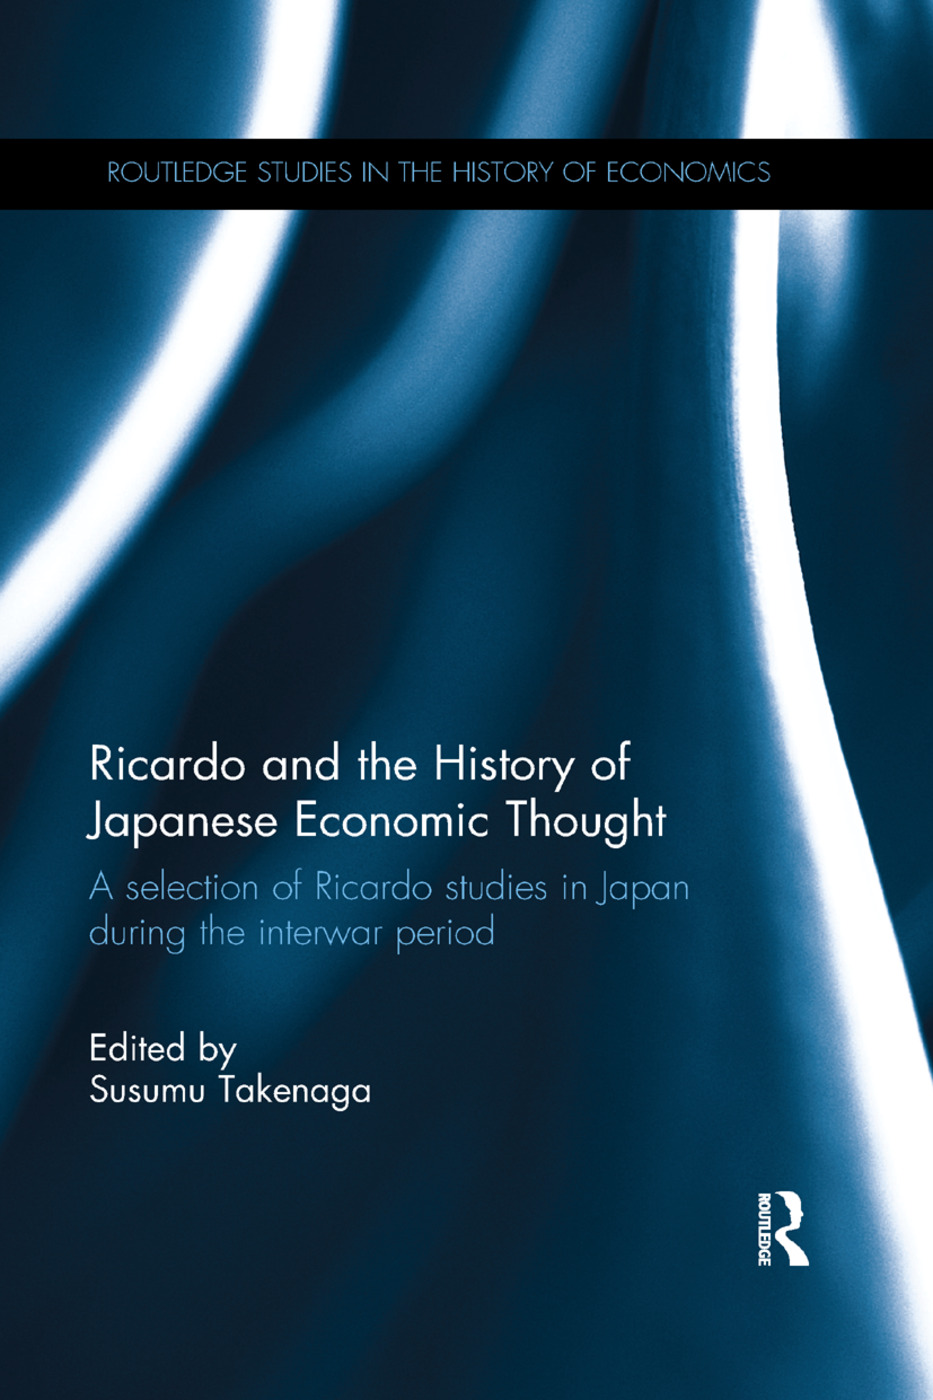 Ricardo and the History of Japanese Economic Thought